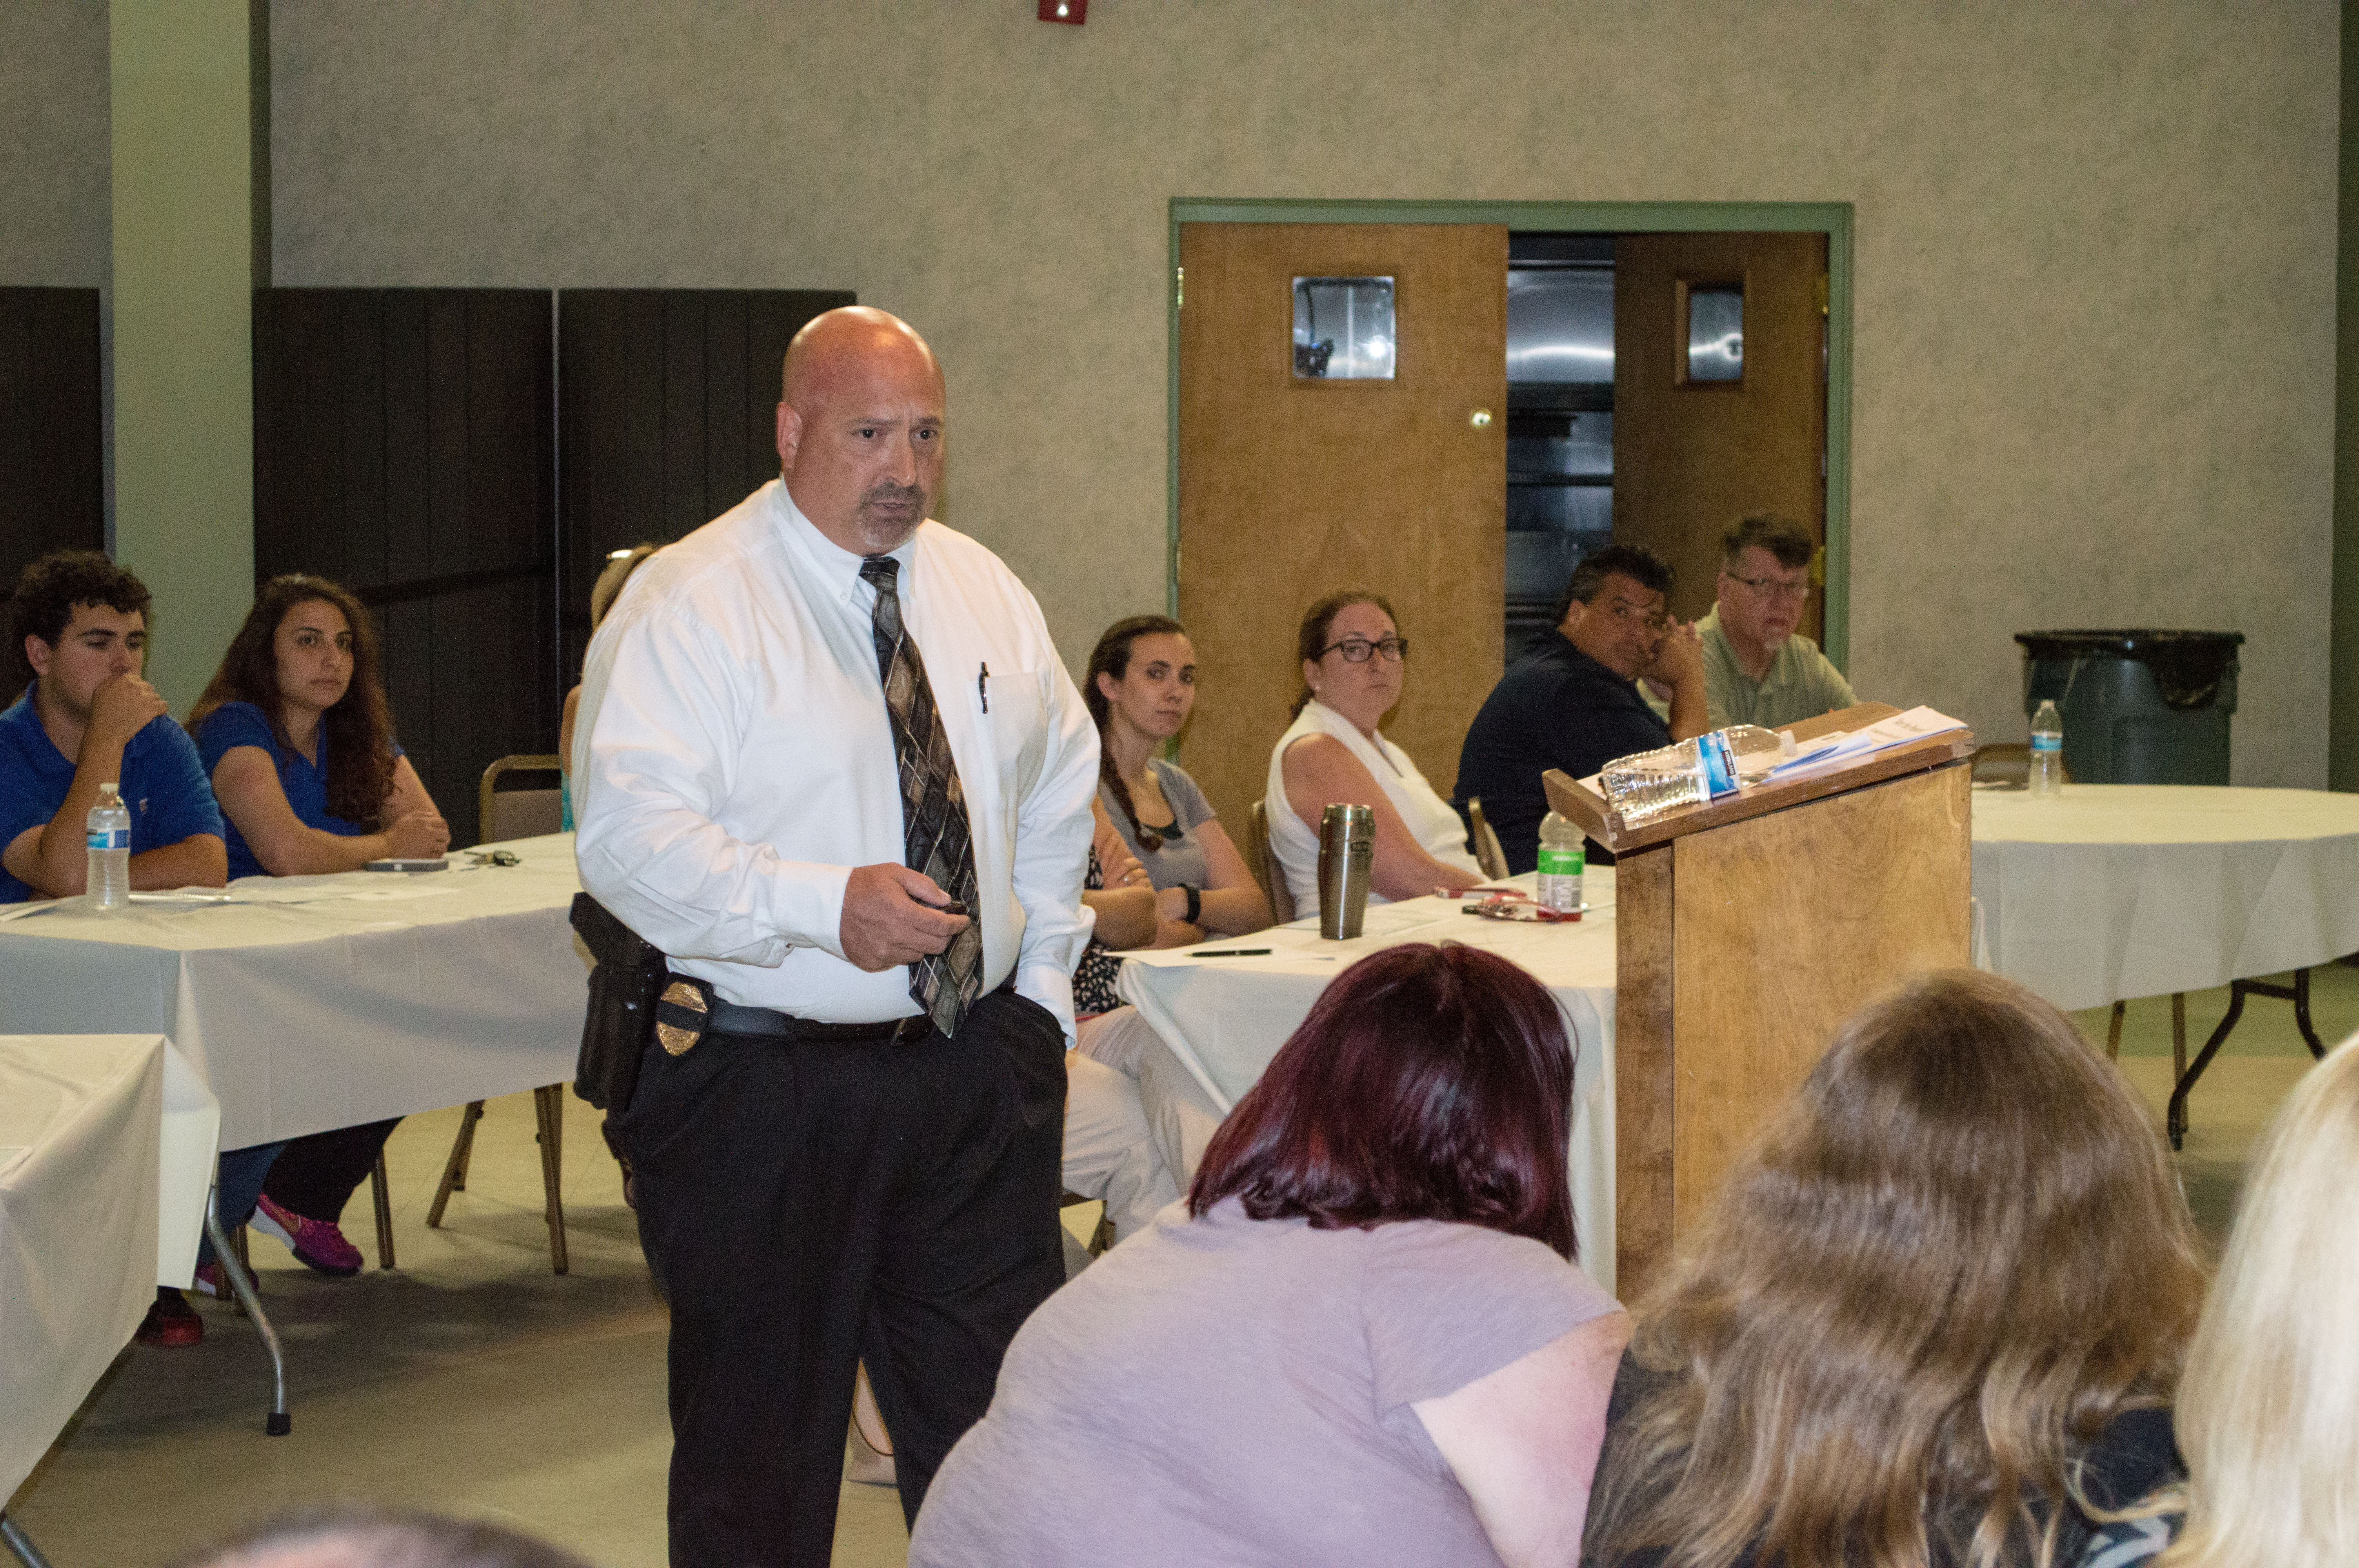 Brick Police Detective Tim McCarthy addresses business owners on active shooter preparation. (Photo: Daniel Nee)